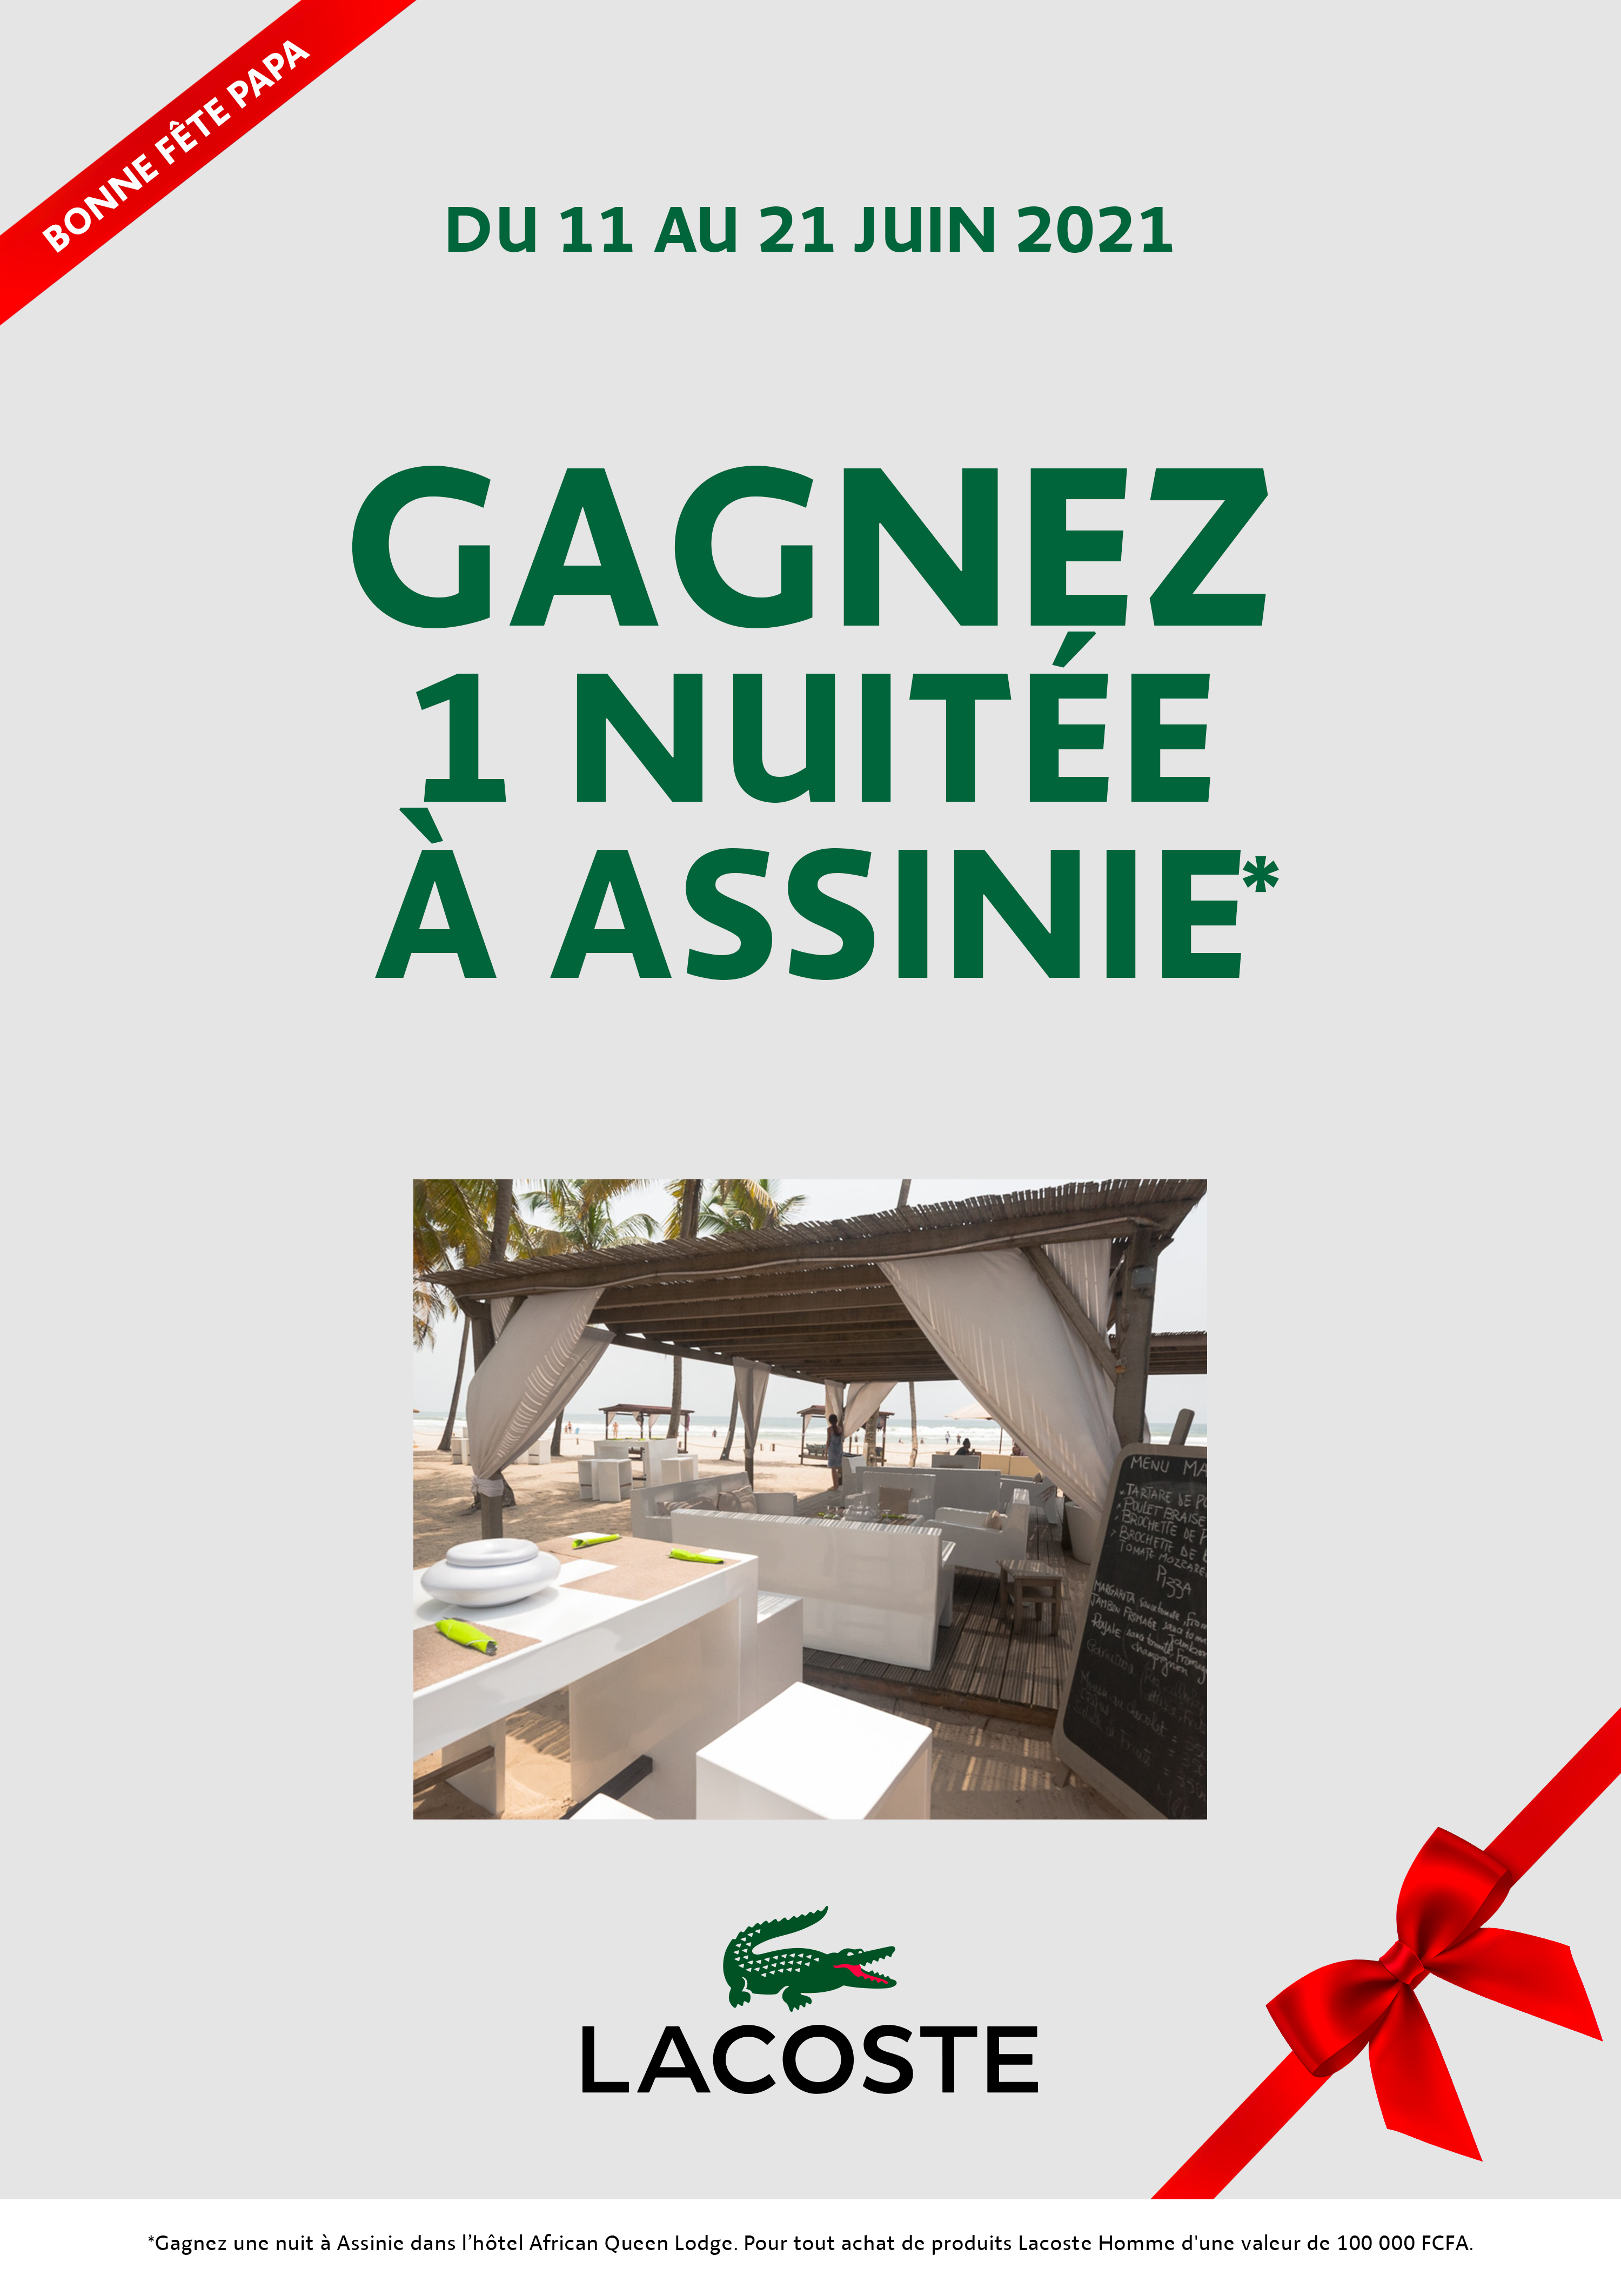 GAGNER UNE NUITEE LACOSTE